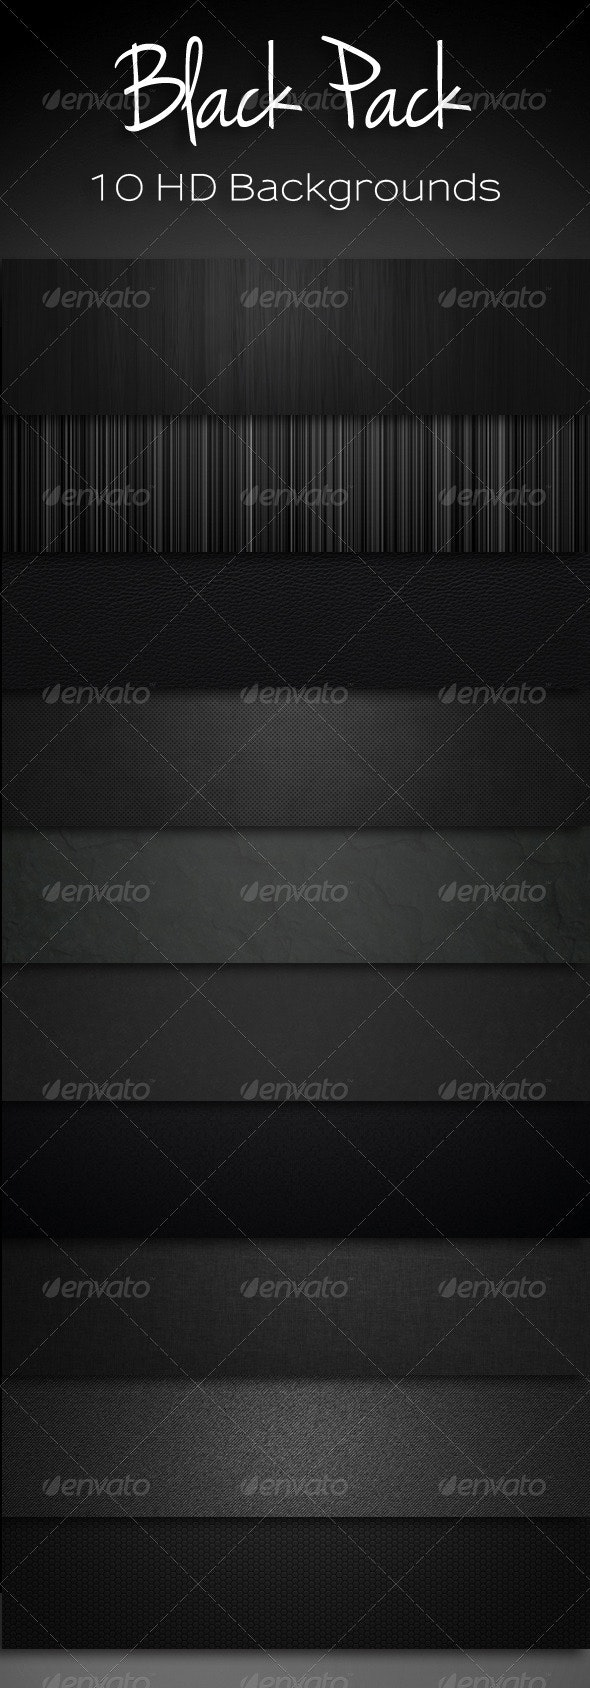 10 Black Backgrounds Bundle - Backgrounds Graphics